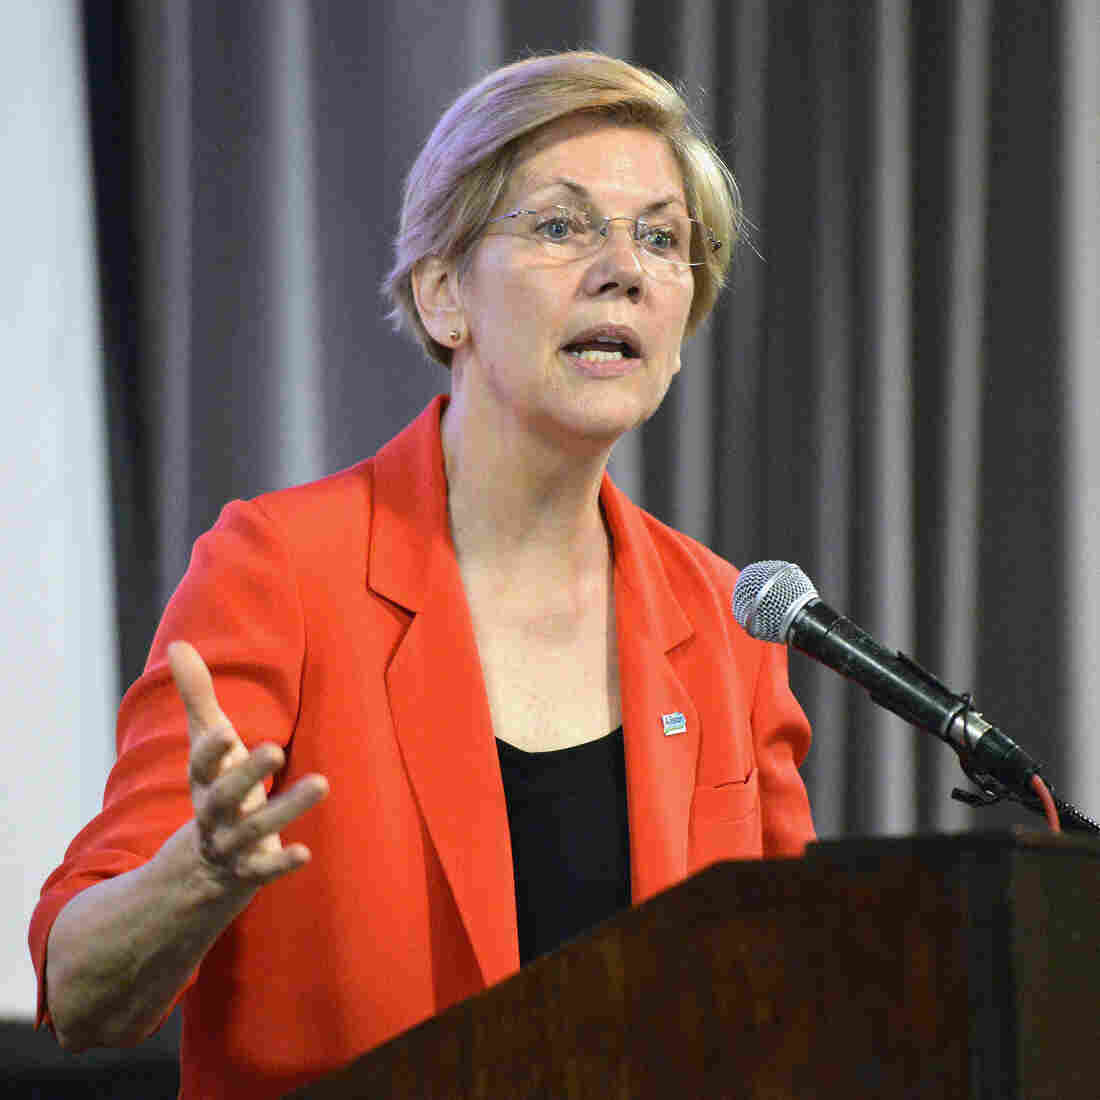 Sen. Elizabeth Warren, of Massachusetts, speaks to a group of supporters at a rally in support of Kentucky Democratic candidate Alison Lundergan Grimes in June.